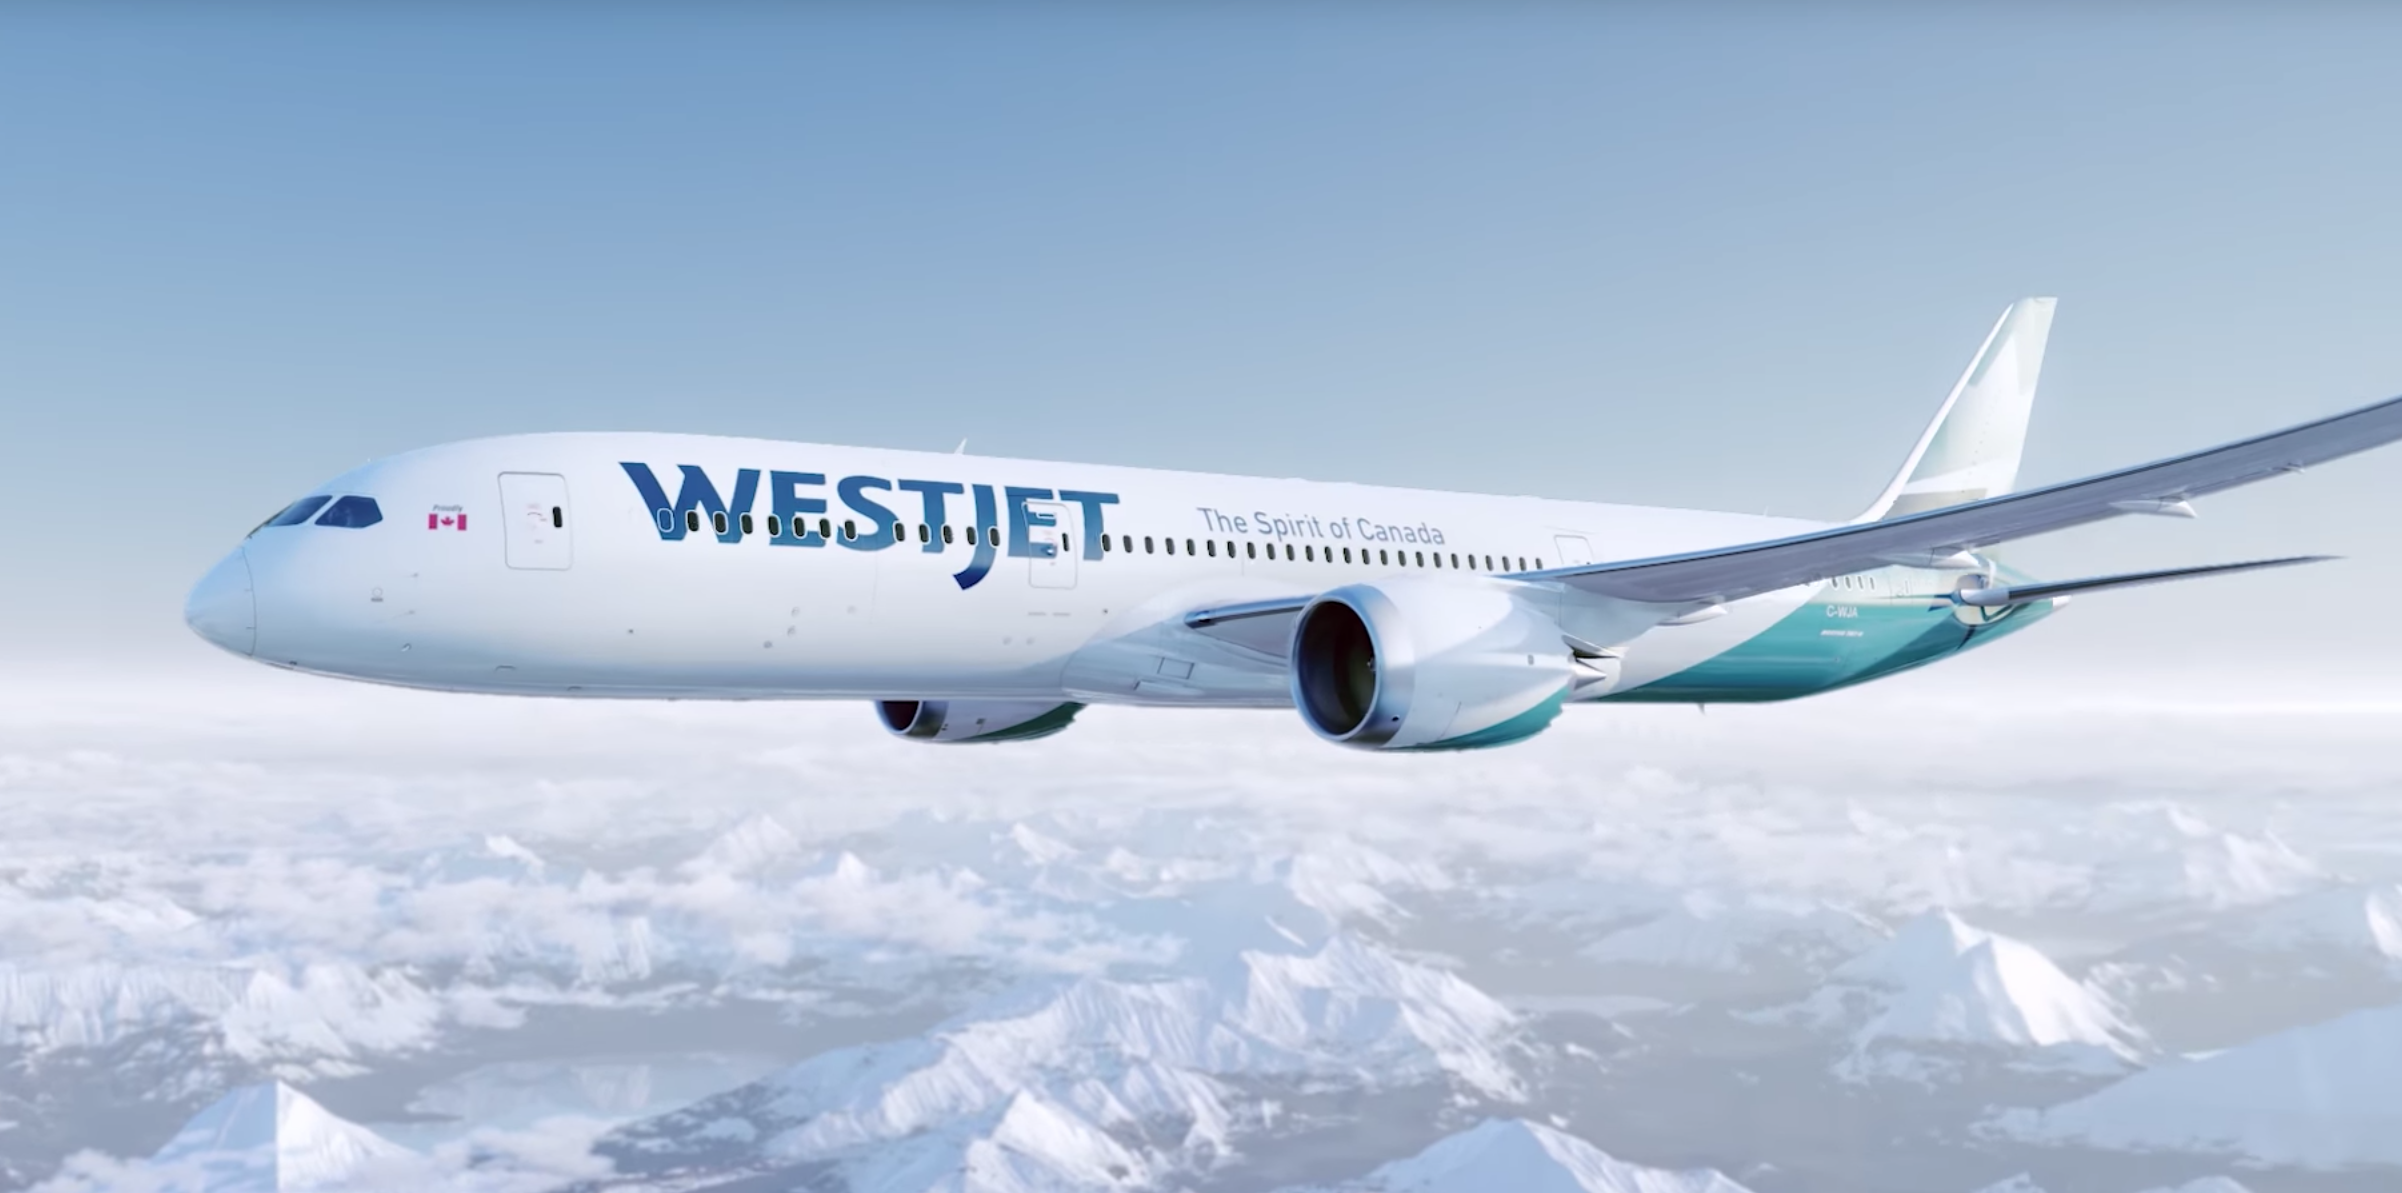 Westjet's new 787 Dreamliner sprints away from its